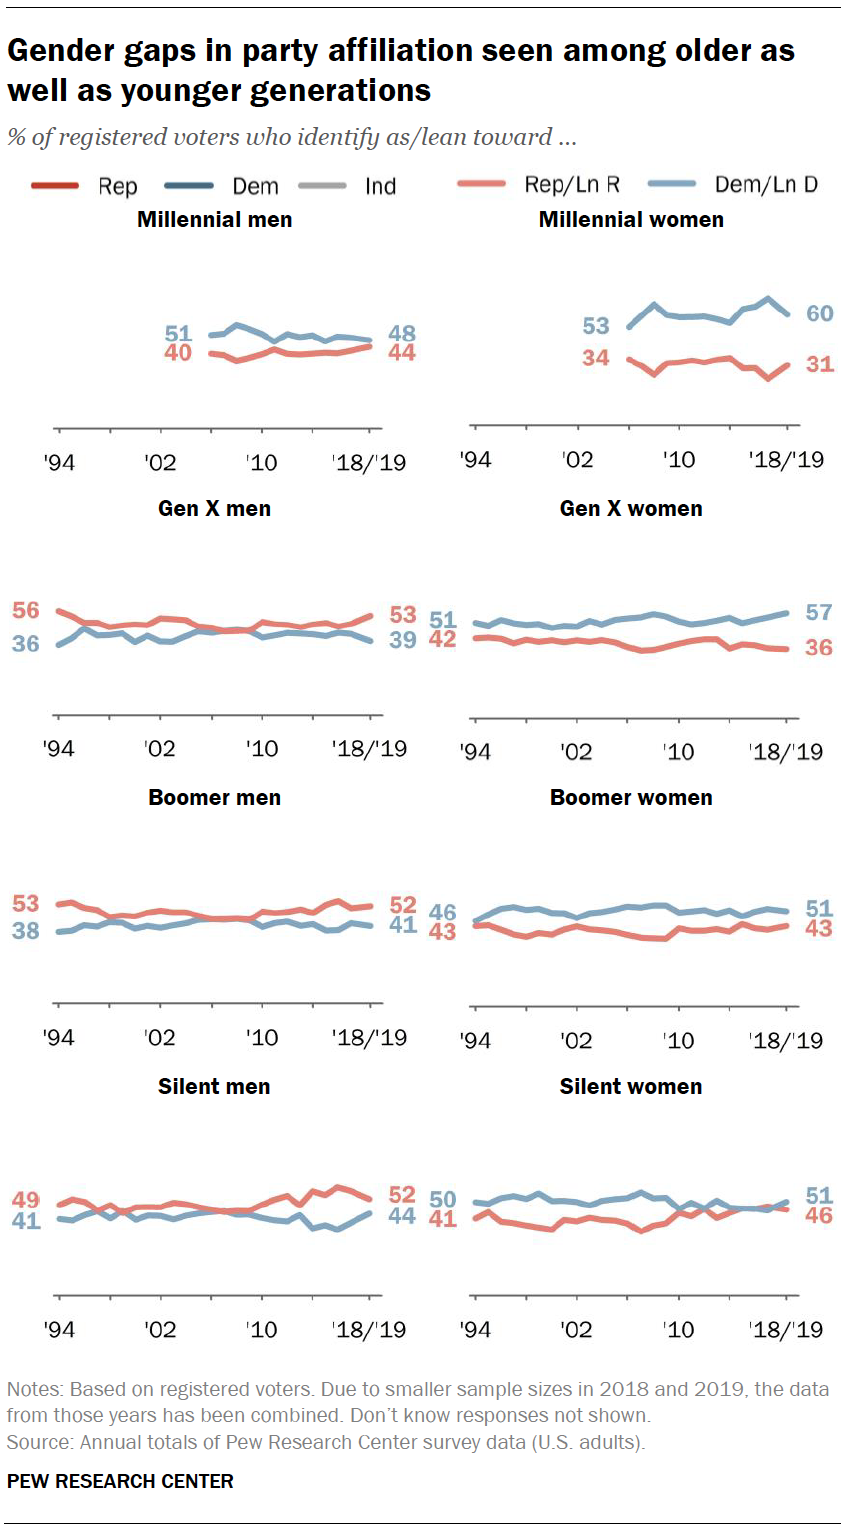 Gender gaps in party affiliation seen among older as well as younger generations